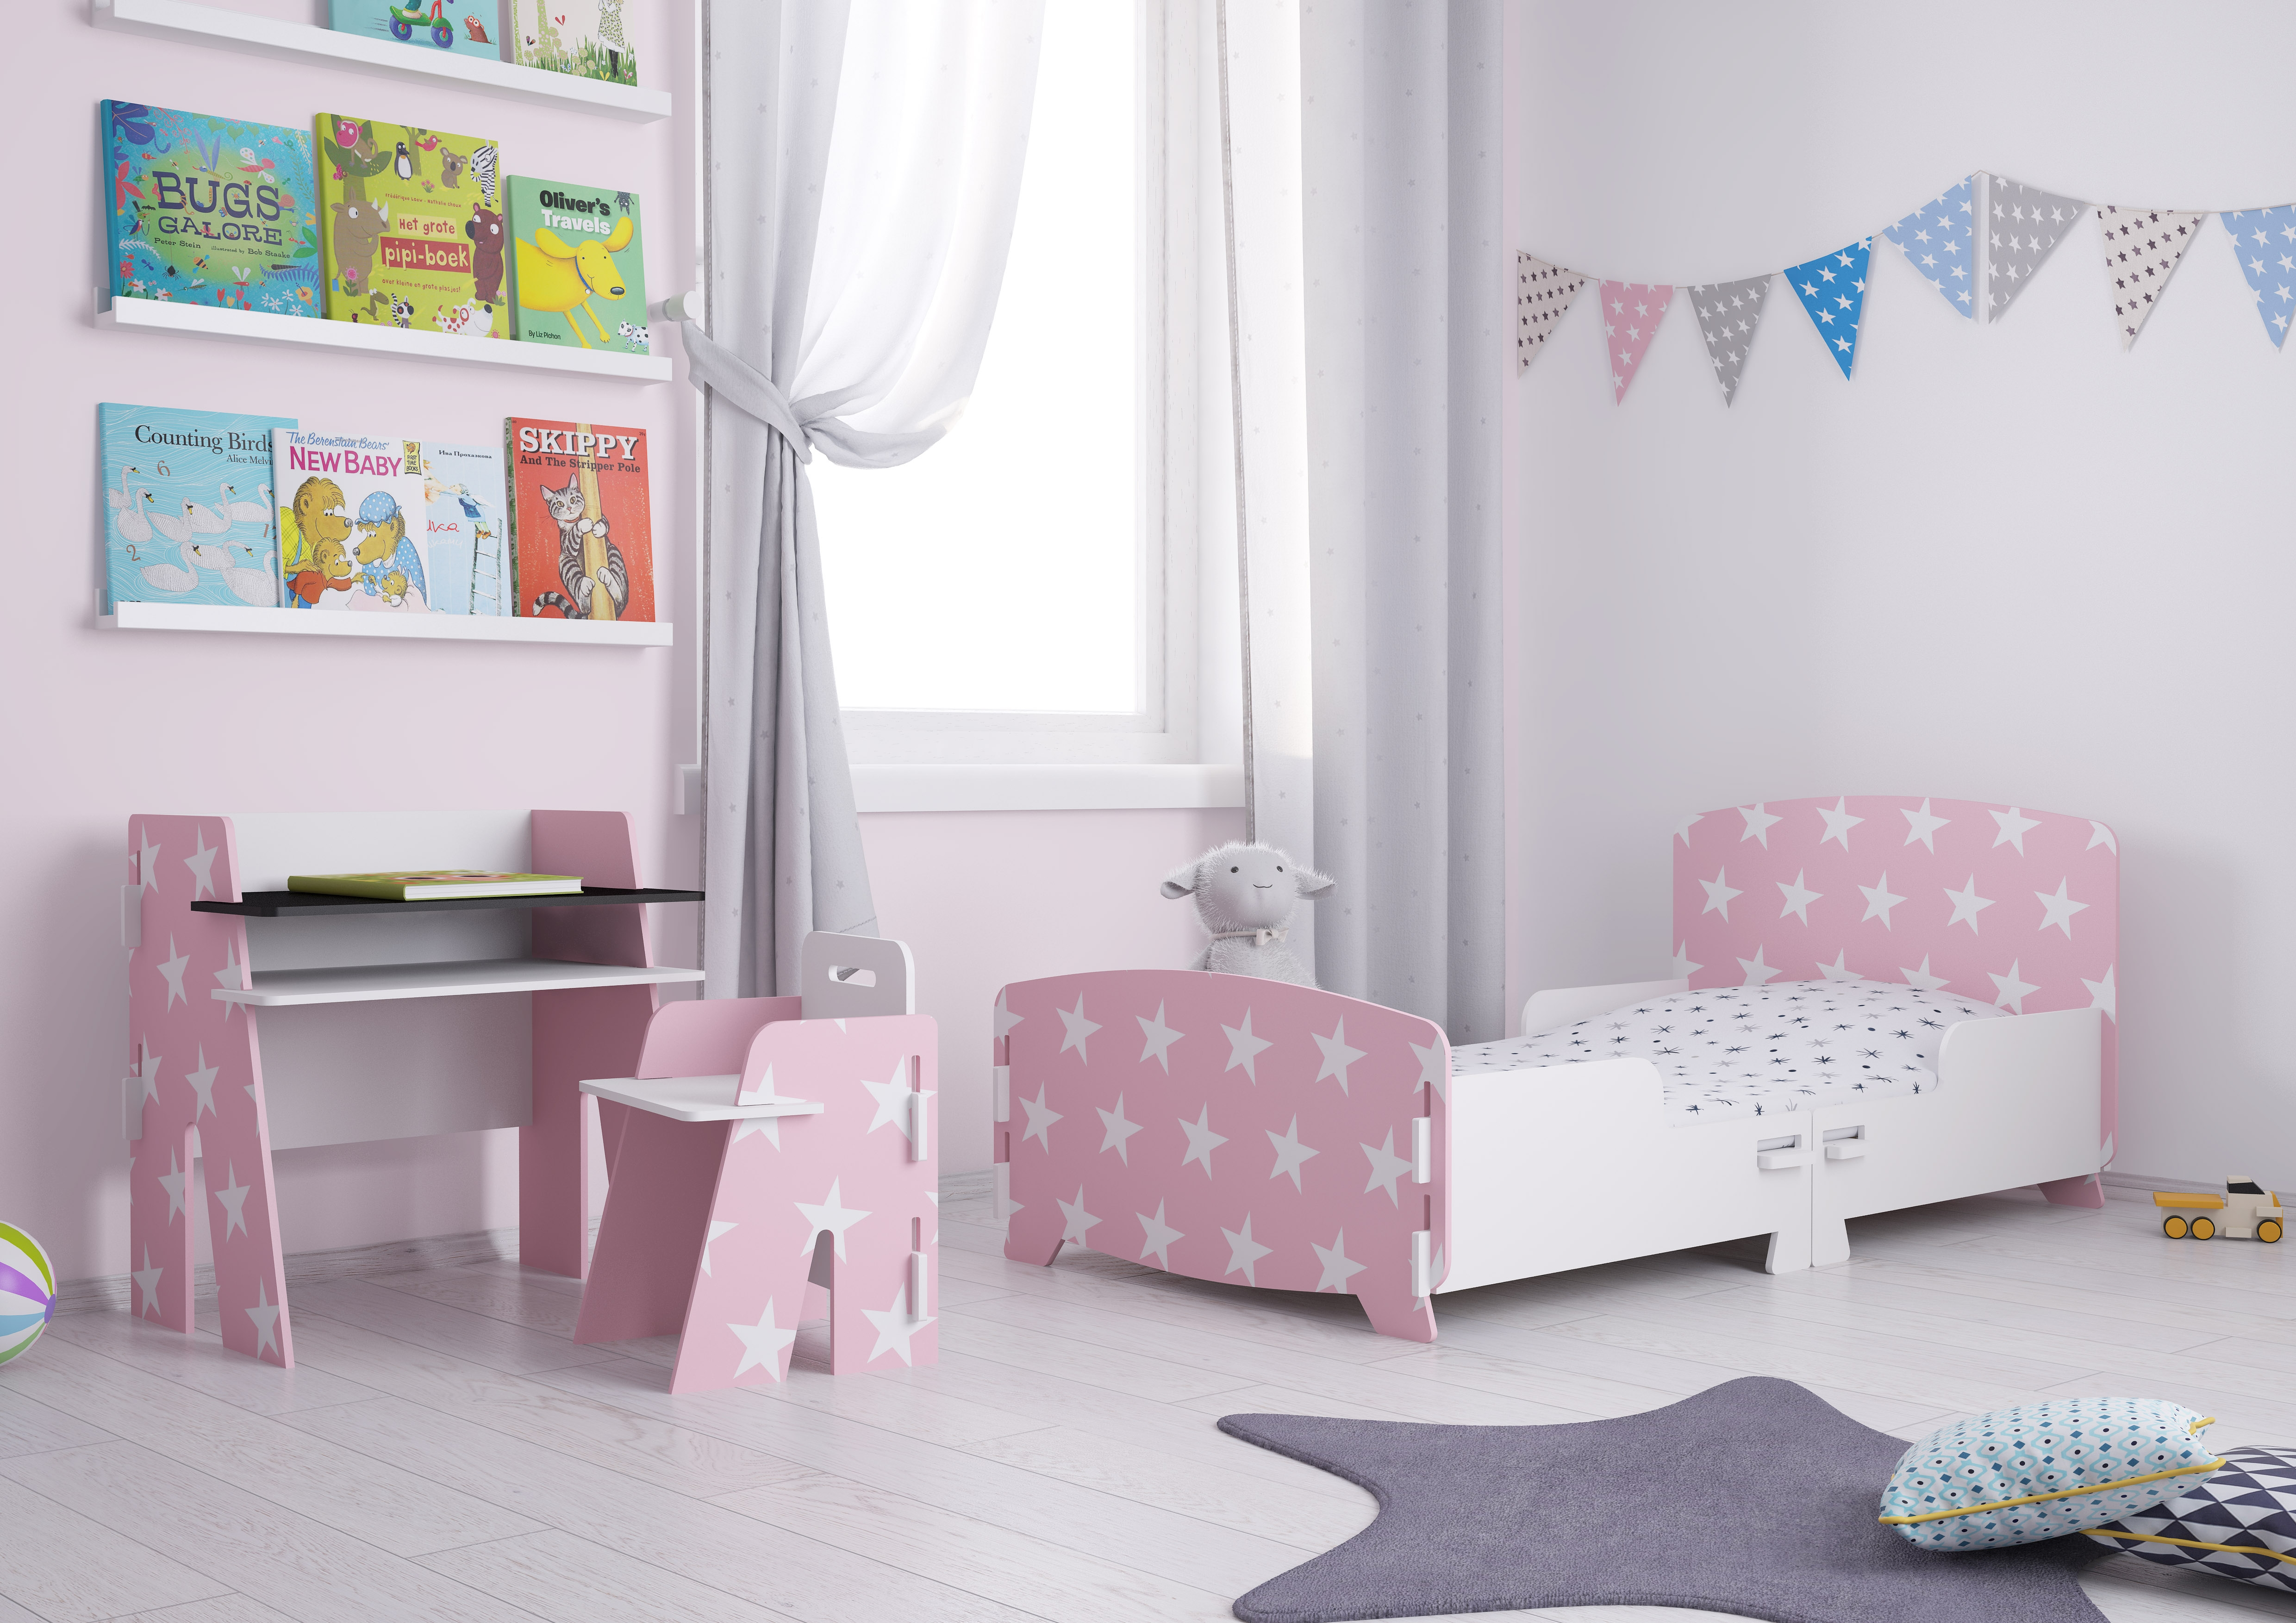 Star Pink and White Children's Bedroom Furniture Collection